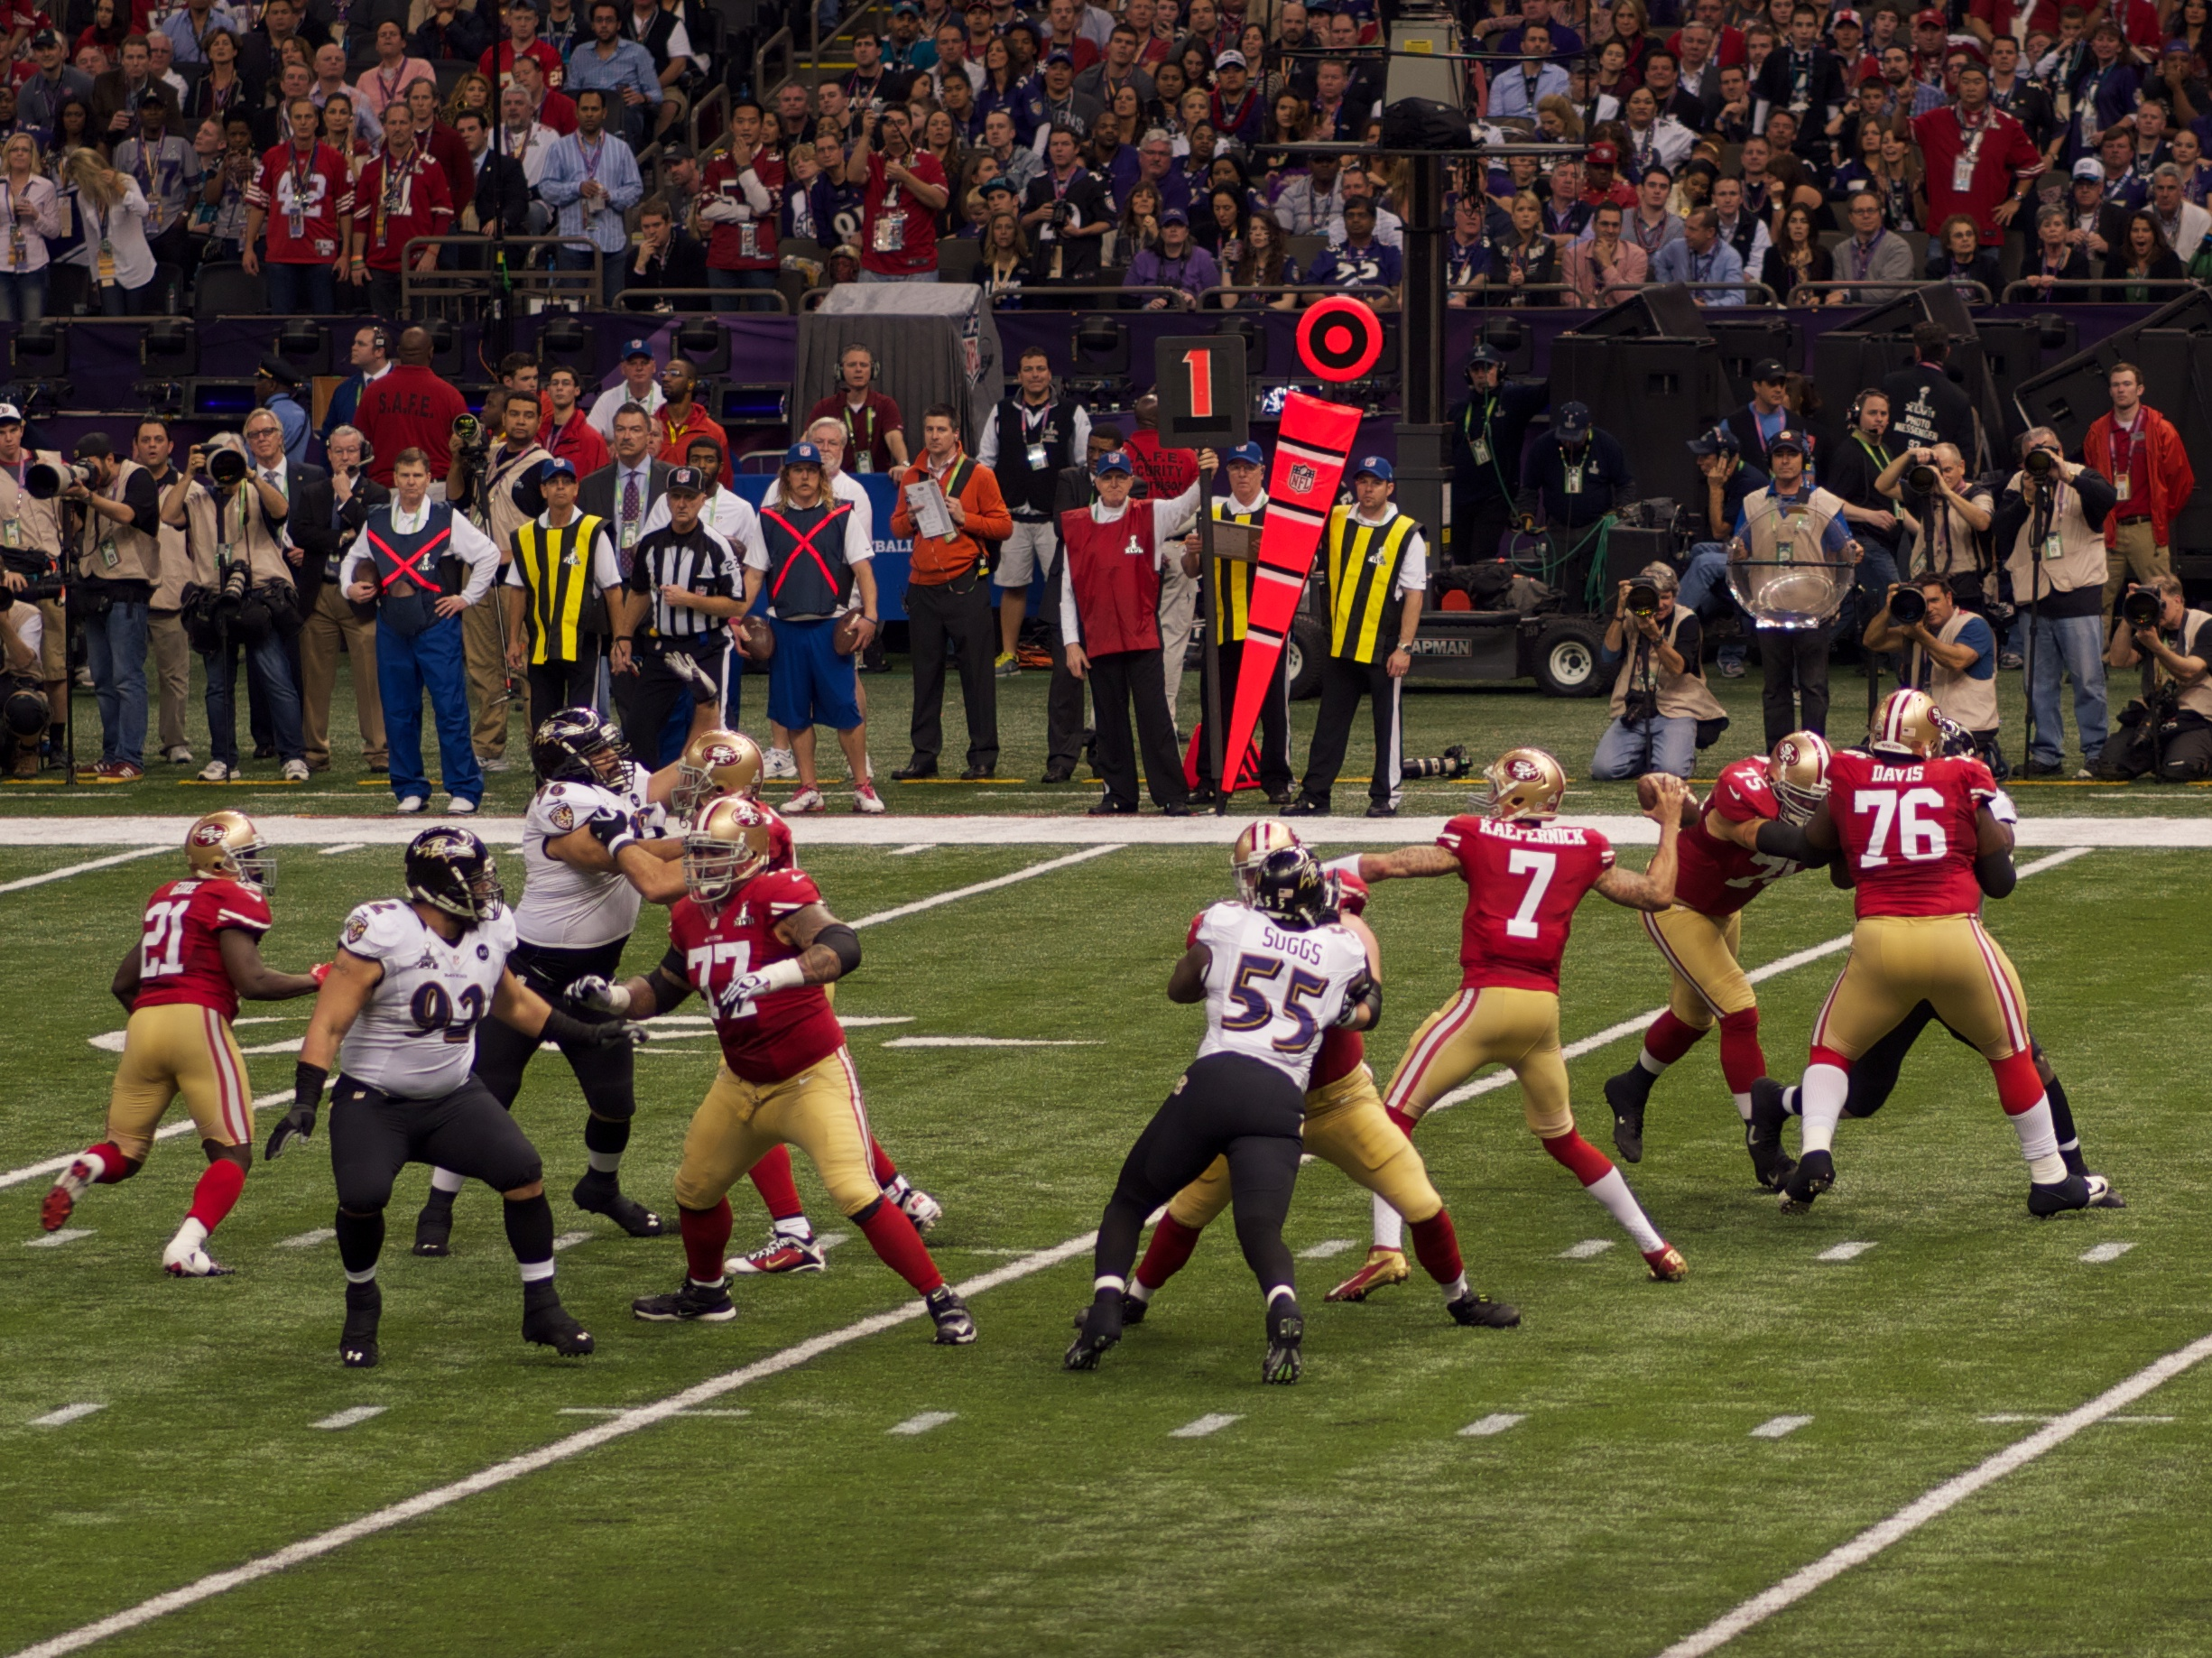 Colin Kaepernick (number 7) is set to throw a pass in Super Bowl XLVIII on Feb. 3, 2013.